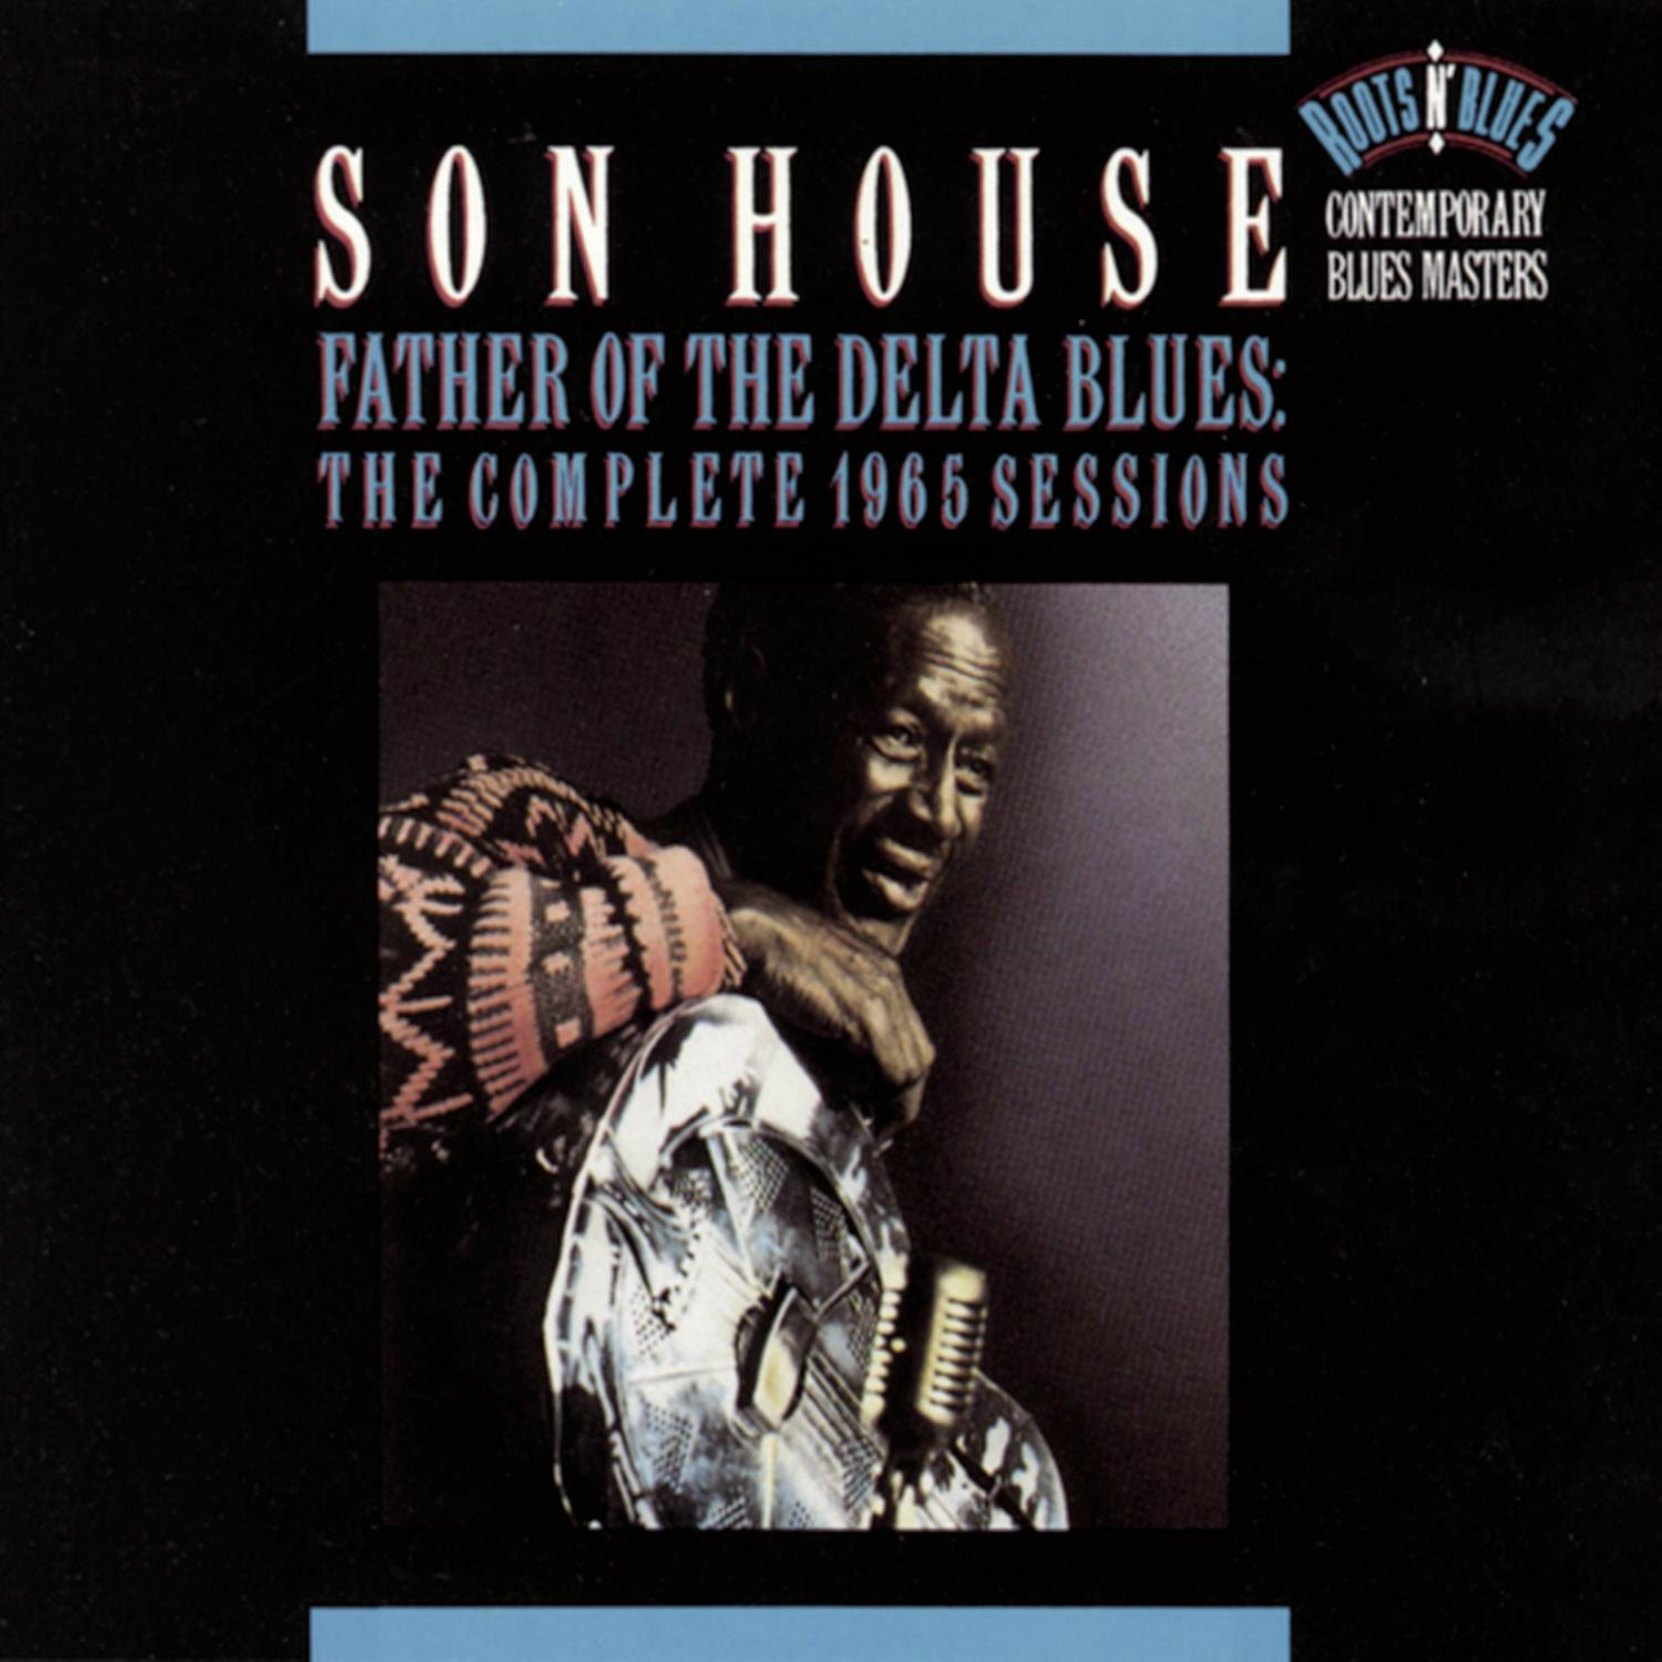 CD cover, Father of the Delta Blues: The Complete 1965 Sessions, by Son House, from the 1965 Columbia Records sessions